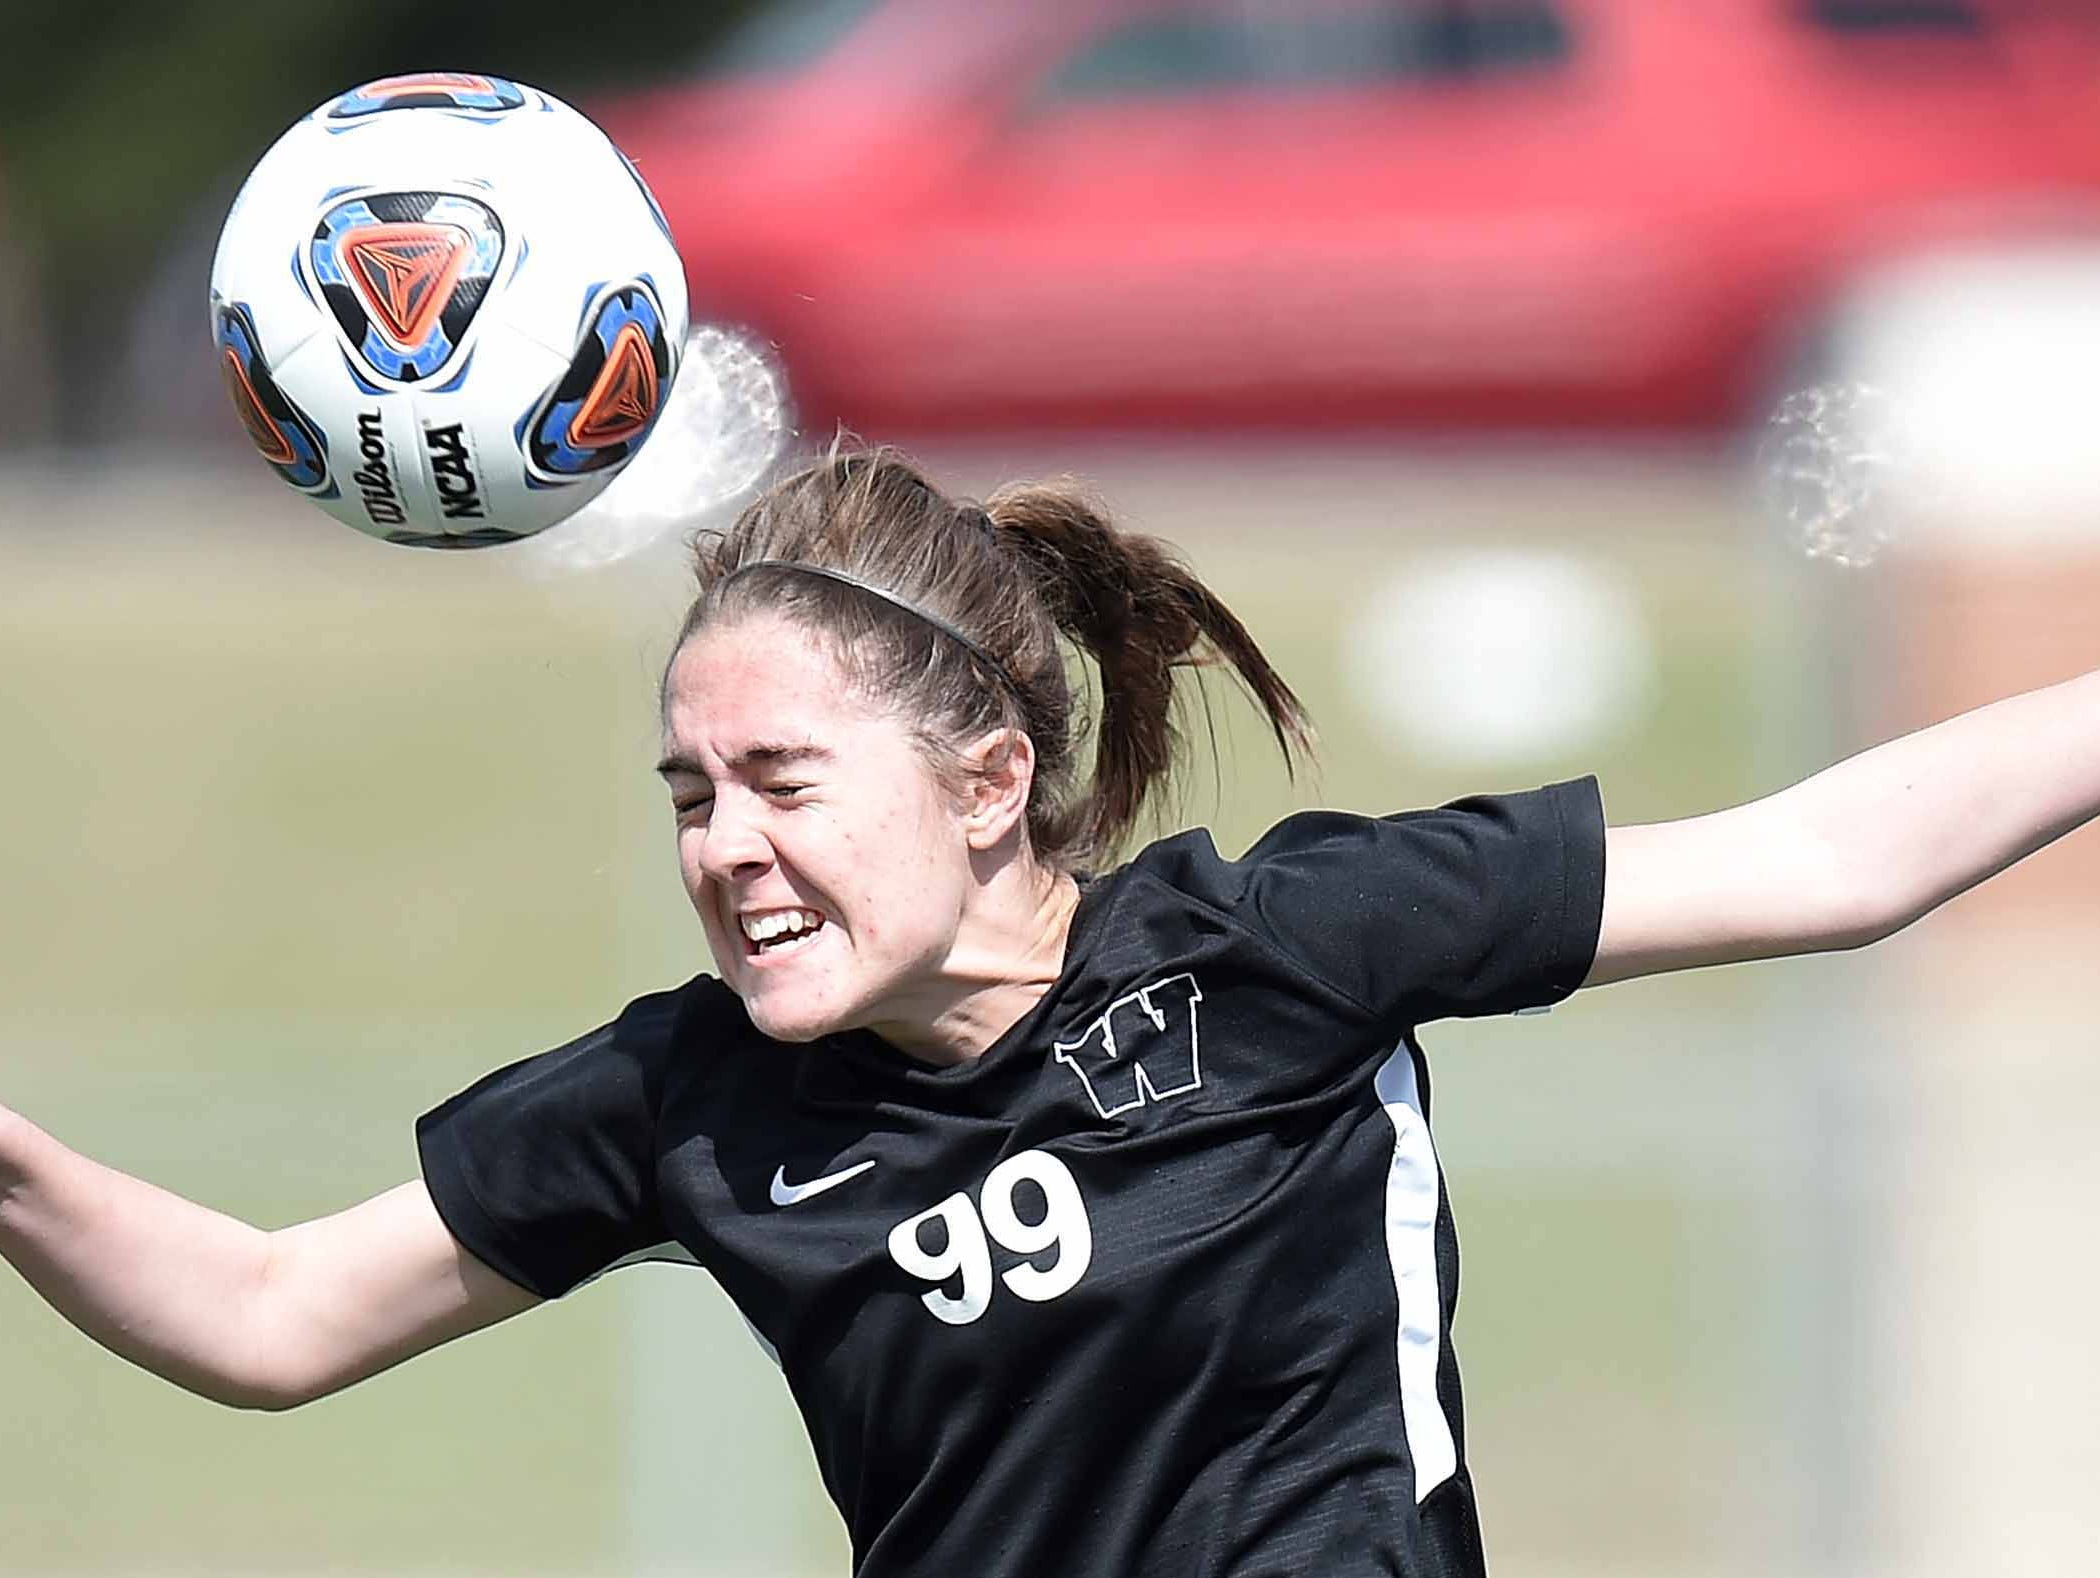 West Lauderdale's Kathryn Knuth (99) heads the ball against Florence in the Class 4A state championship in the MHSAA BlueCross Blue Shield of Mississippi Soccer Classic on Saturday, February 9, 2019, at Ridgeland High School in Ridgeland, Miss.